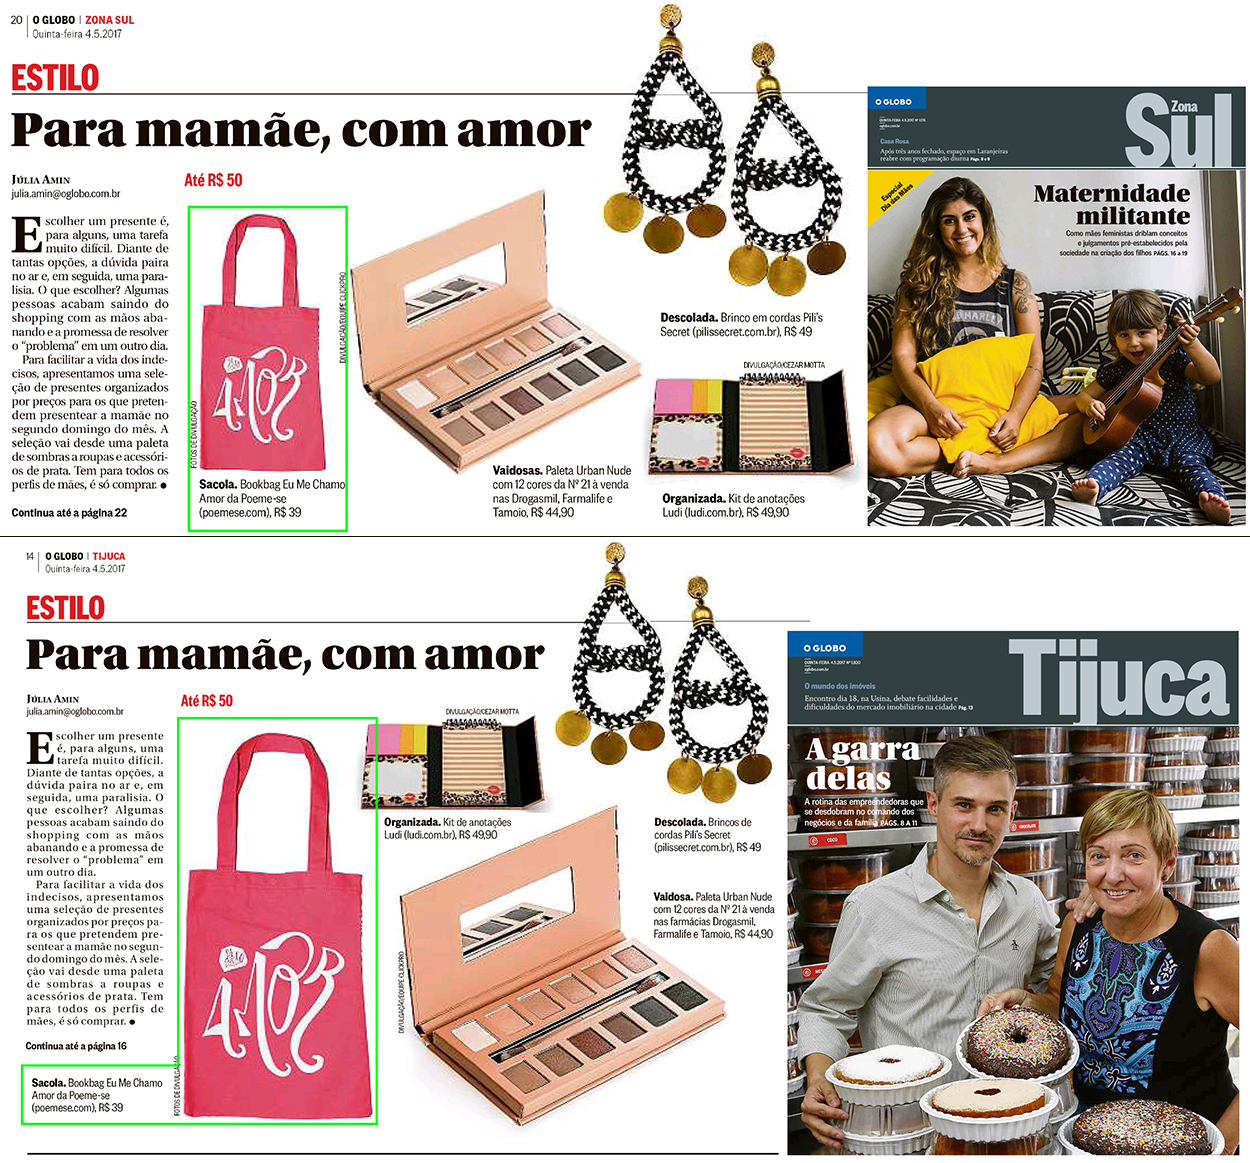 clipping_revista_O_globo